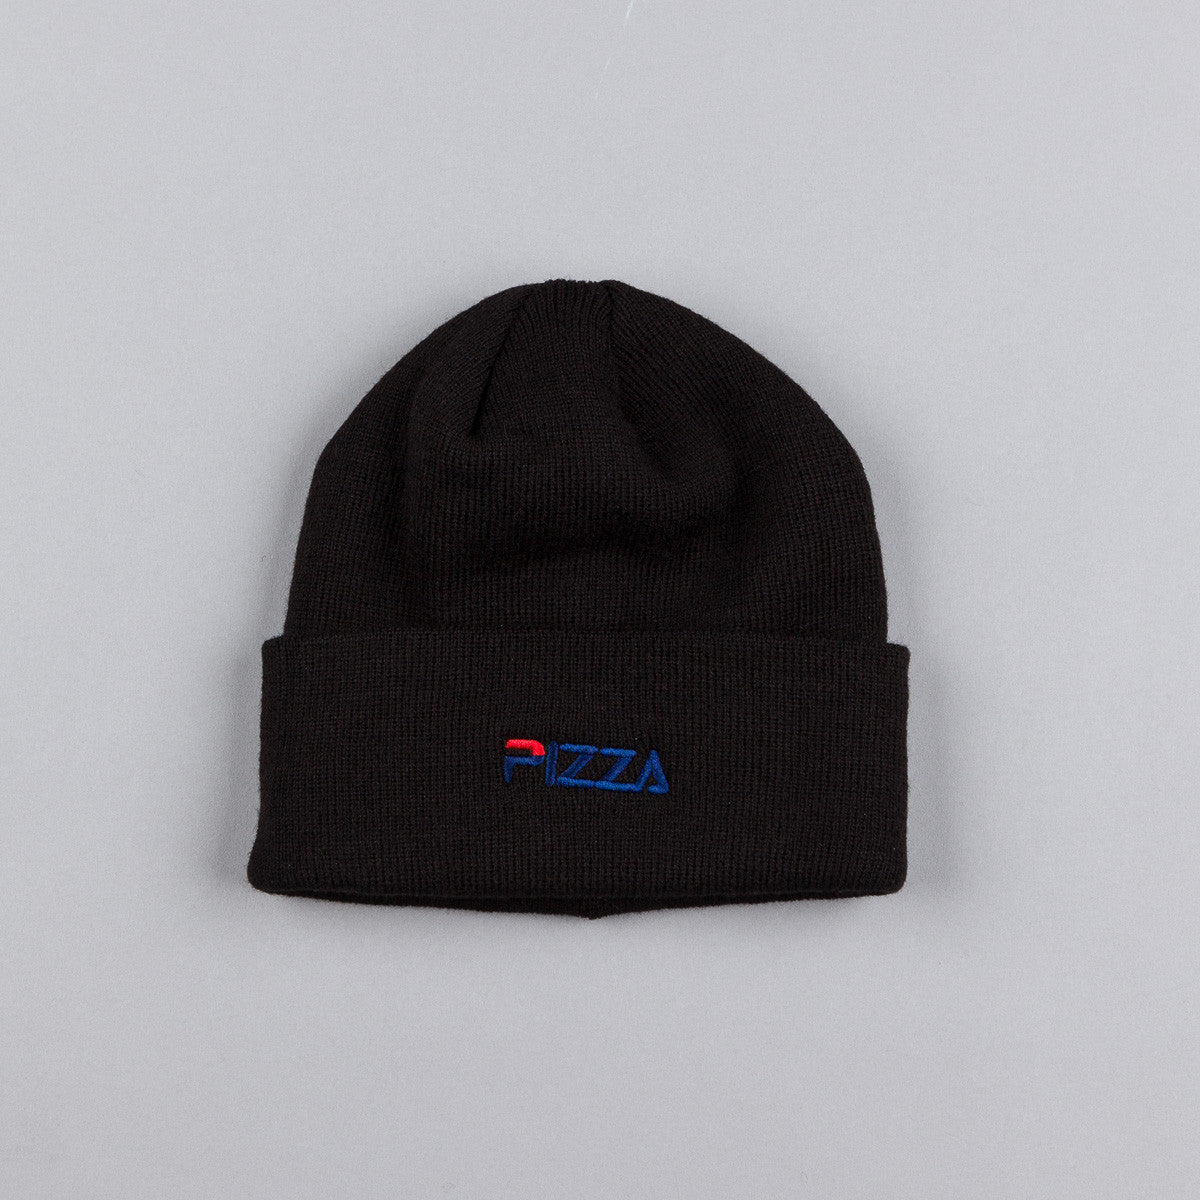 Pizza Skateboards Fizza Beanie